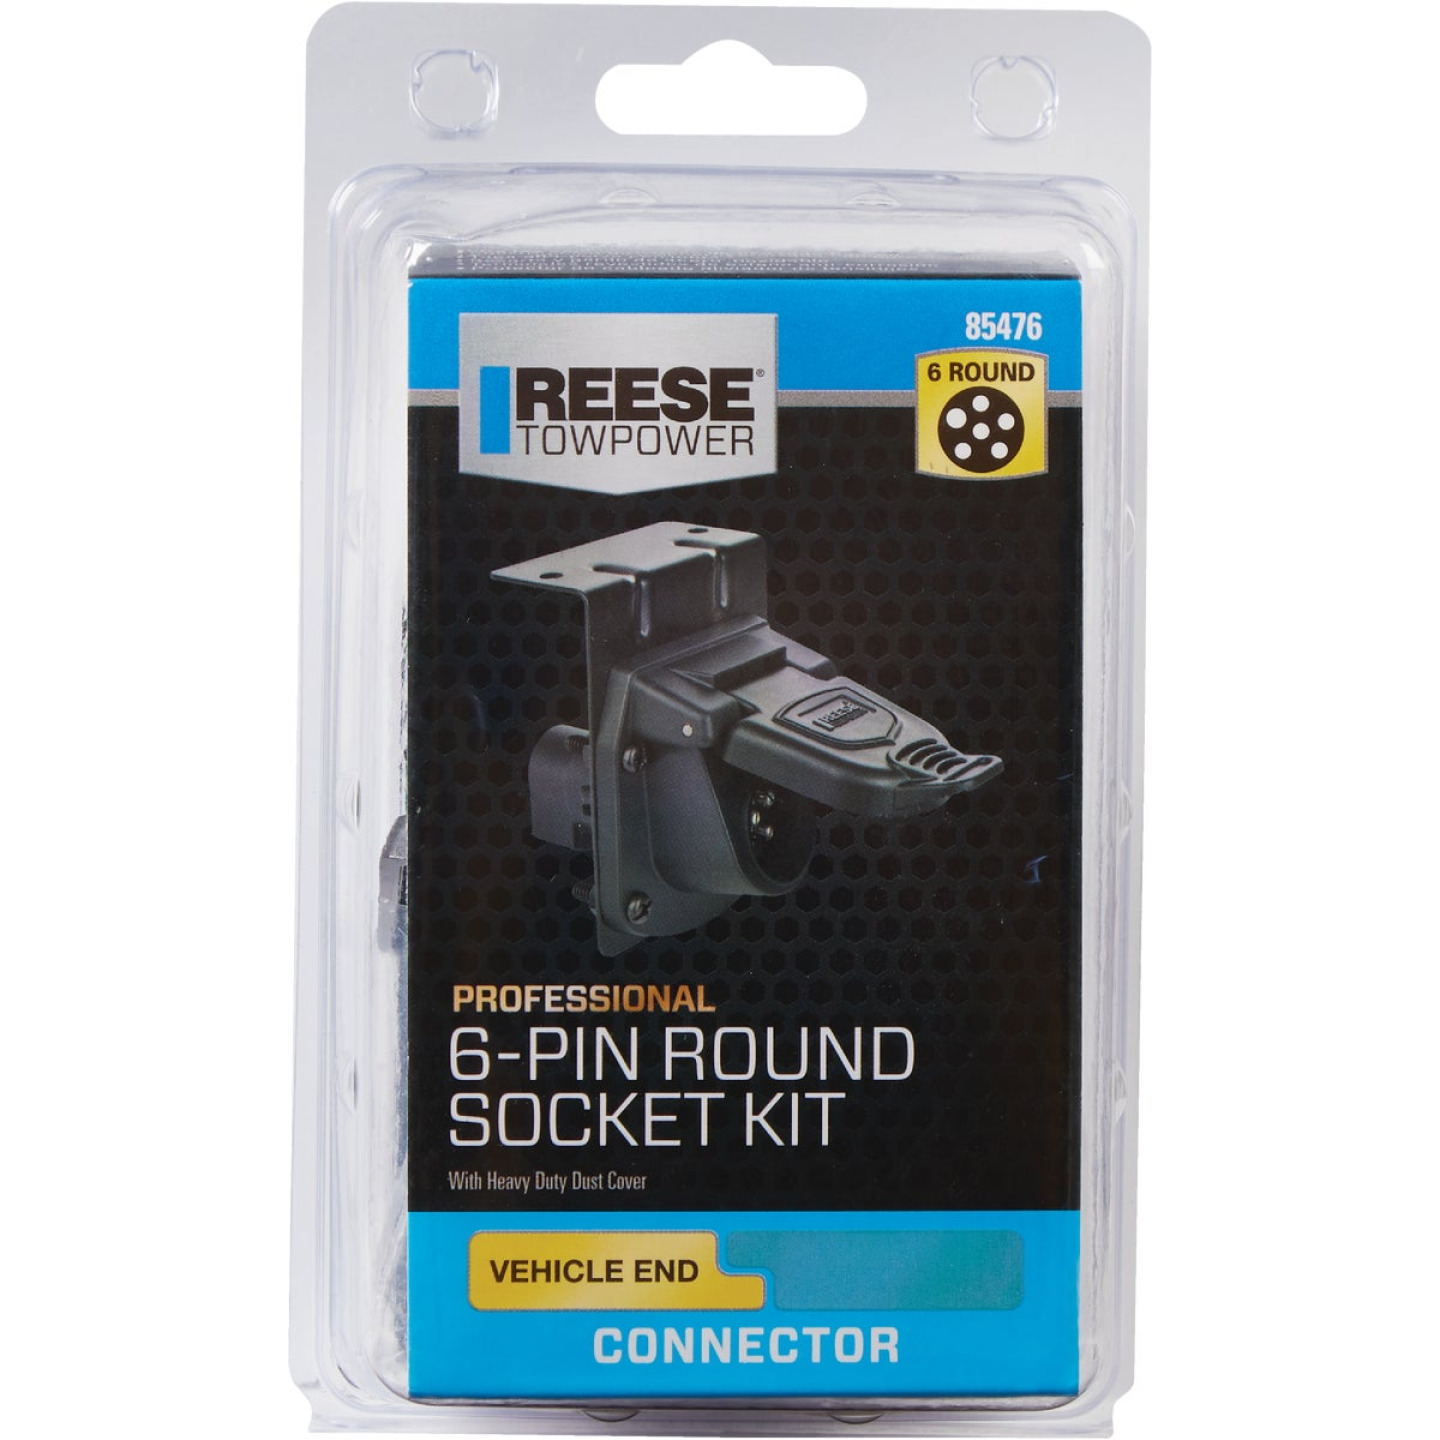 Reese Towpower 6-Round Professional Vehicle Side Connector Image 2